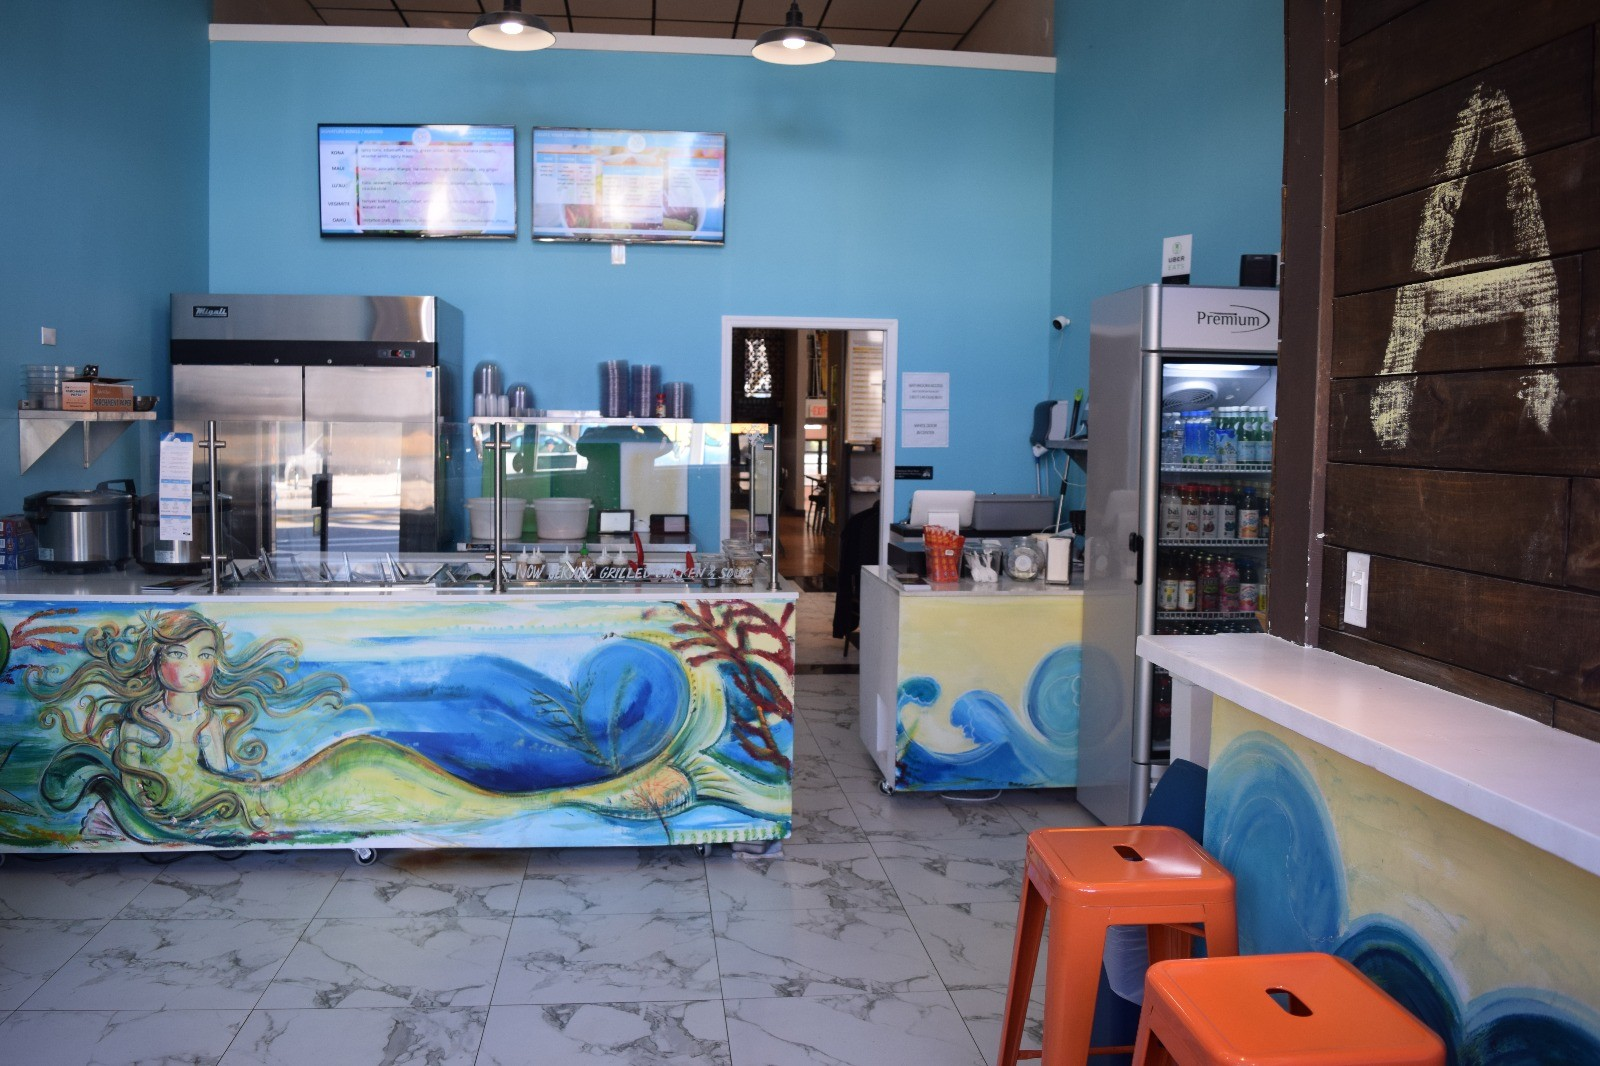 Get$15 for $10 at Raw Poke Bar